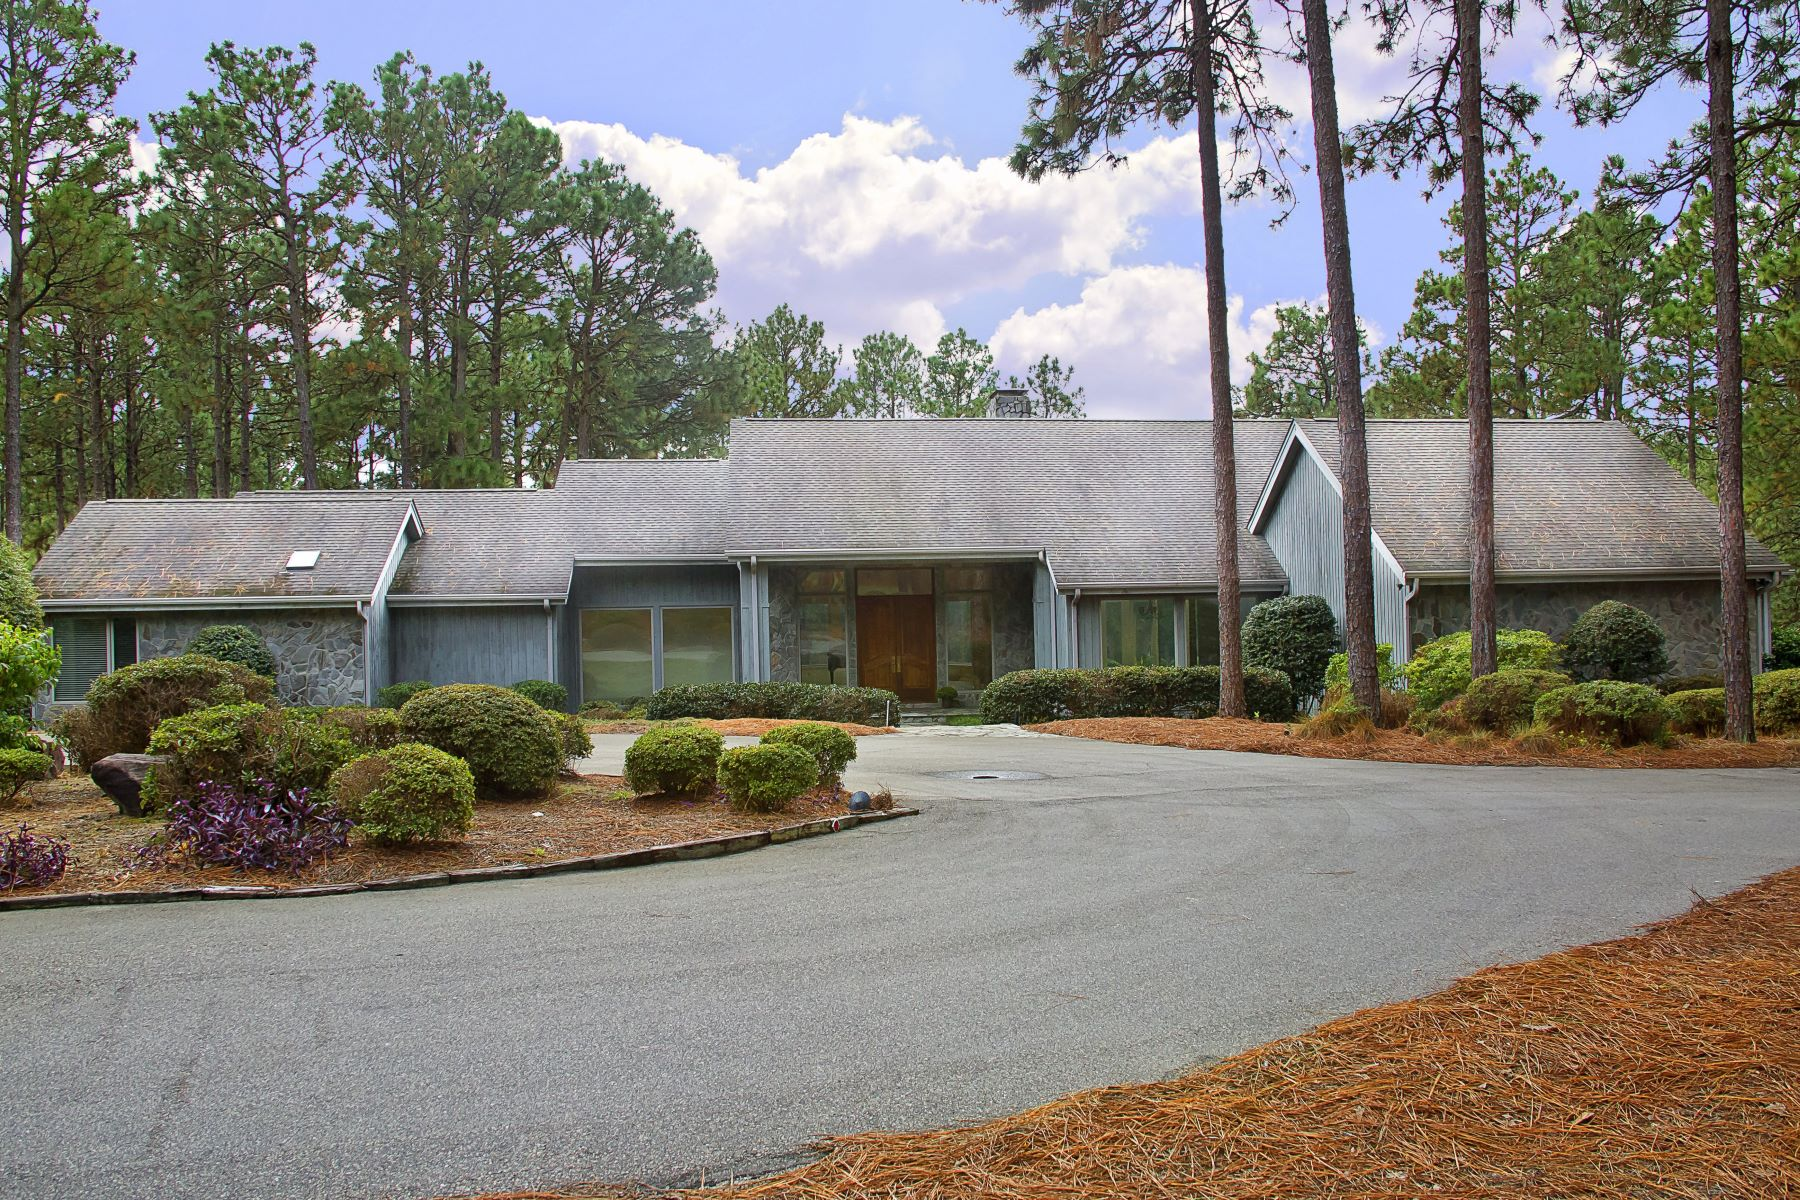 Single Family Homes for Active at Stately Contemporary with Magnificent Golf Views! 80 Cypress Point Drive Pinehurst, North Carolina 28374 United States